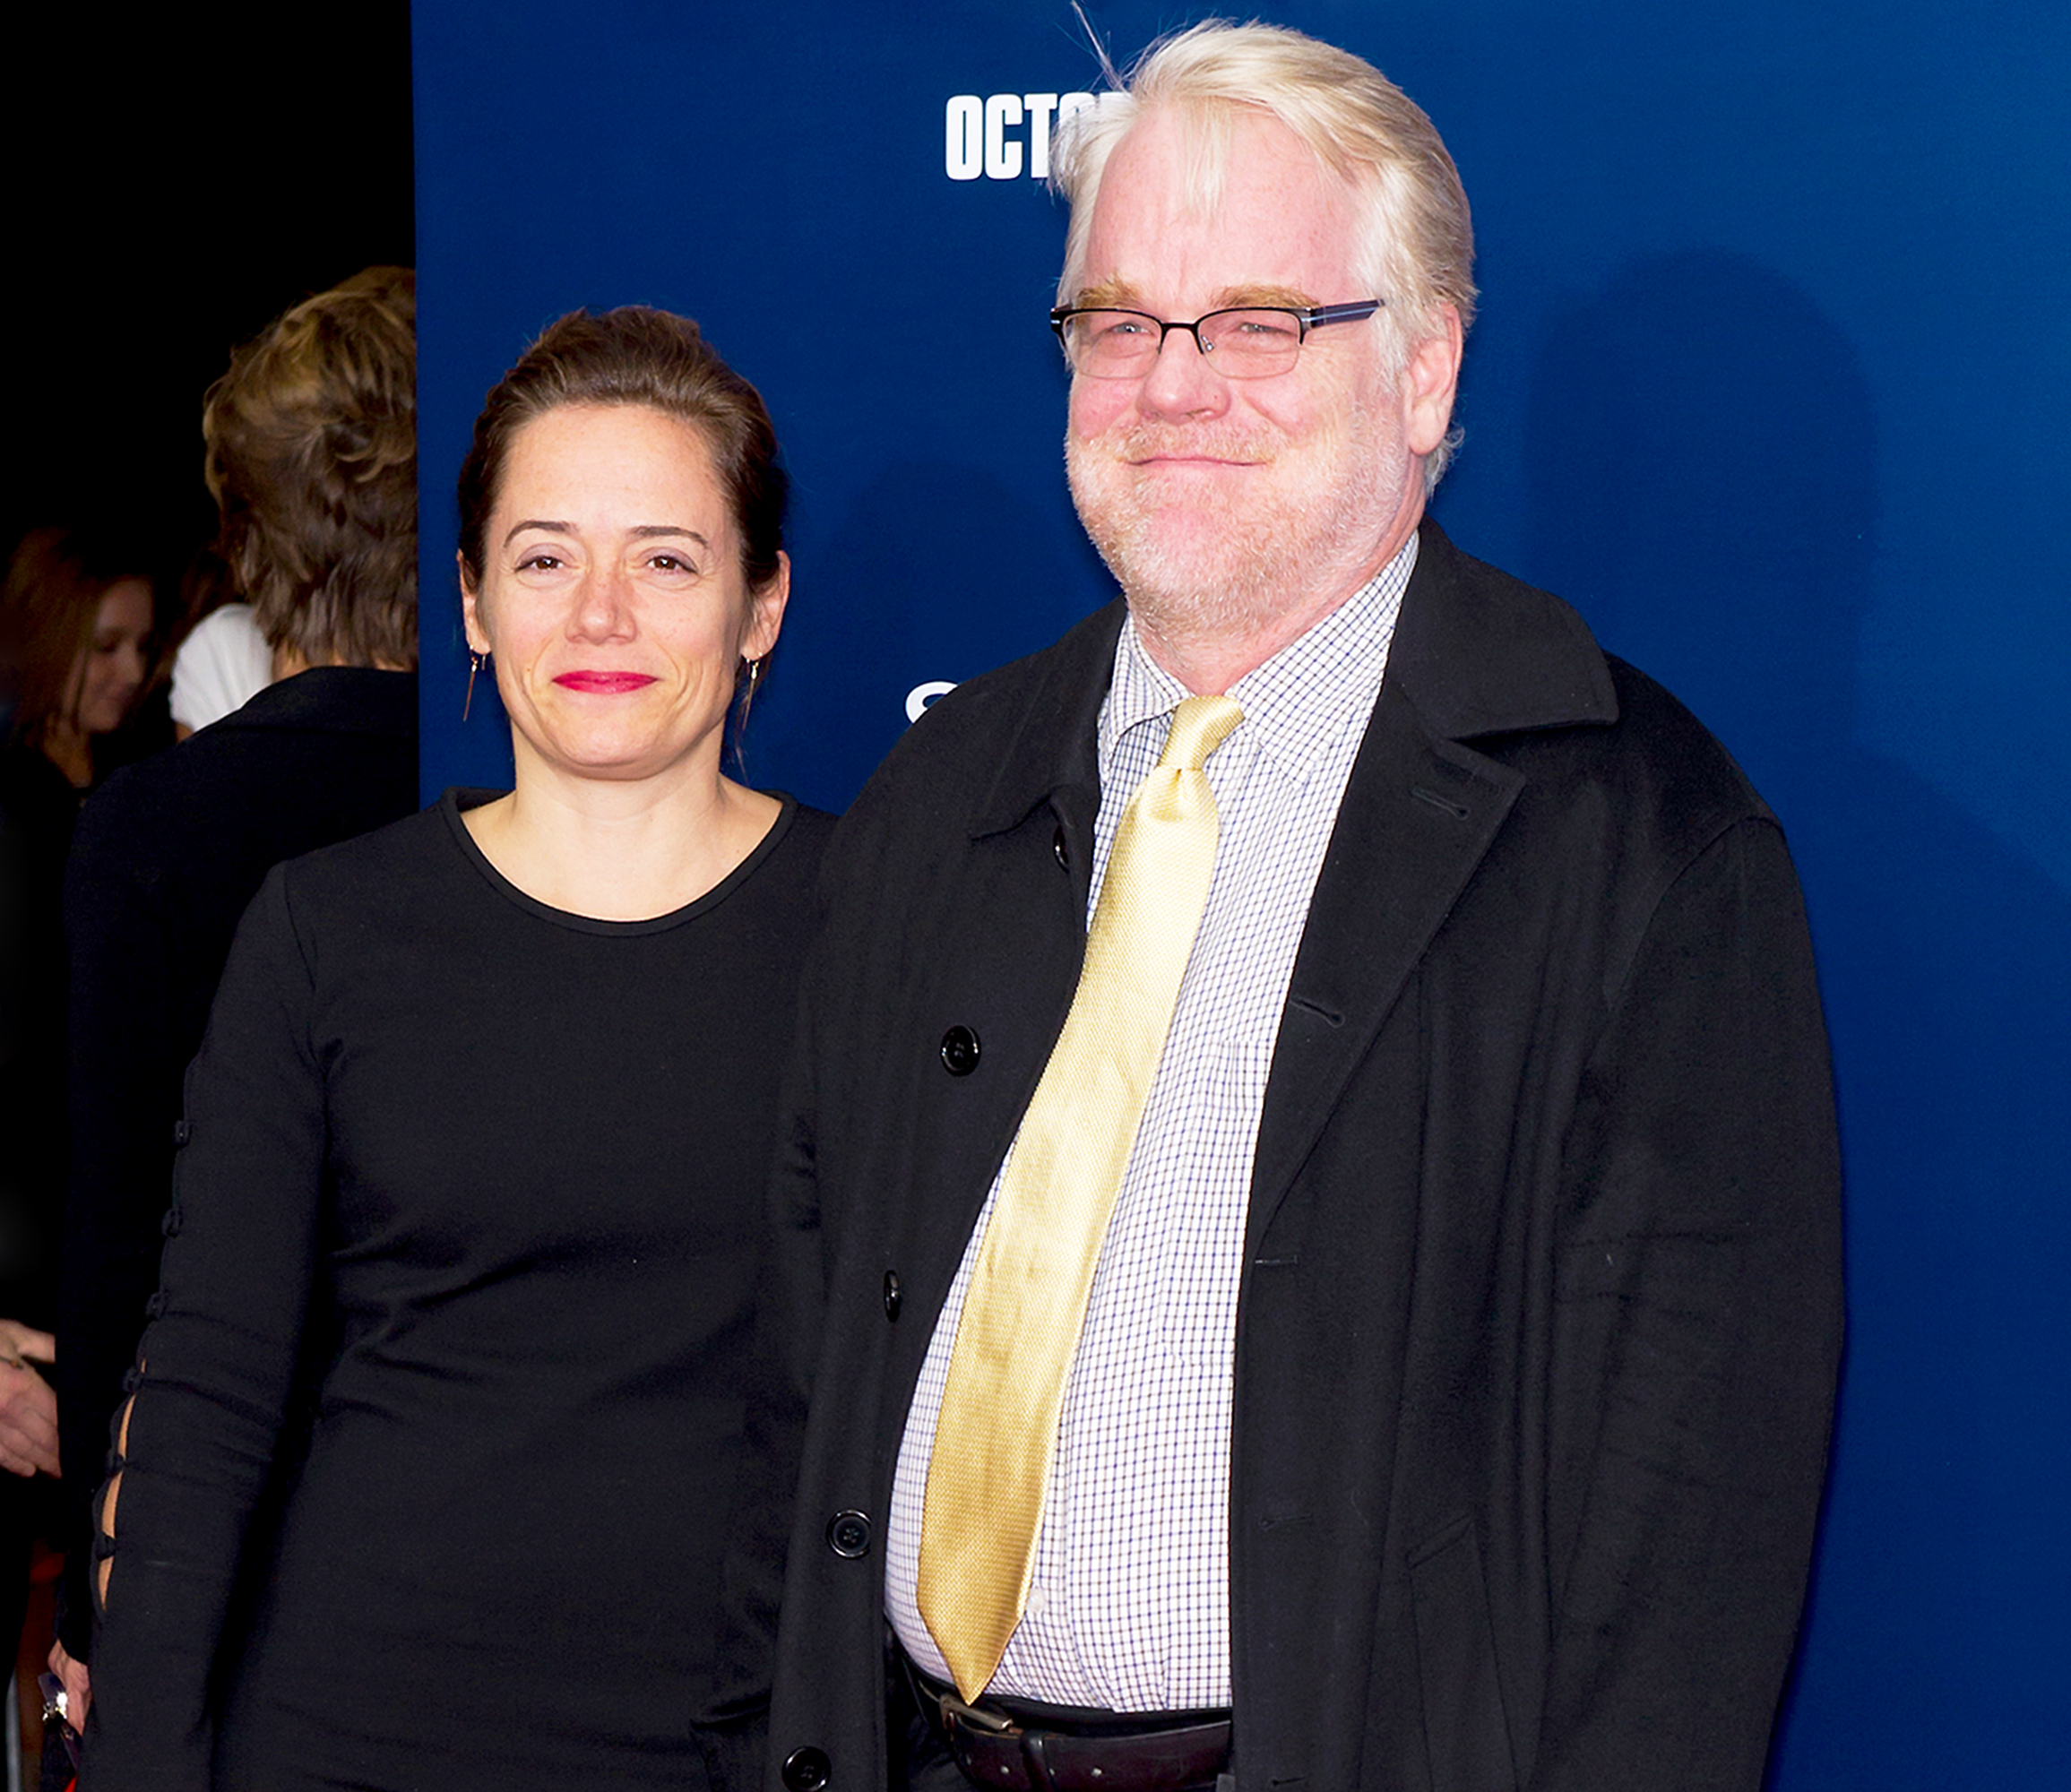 Philip Seymour Hoffman's partner was 'terrified' when he relapsed